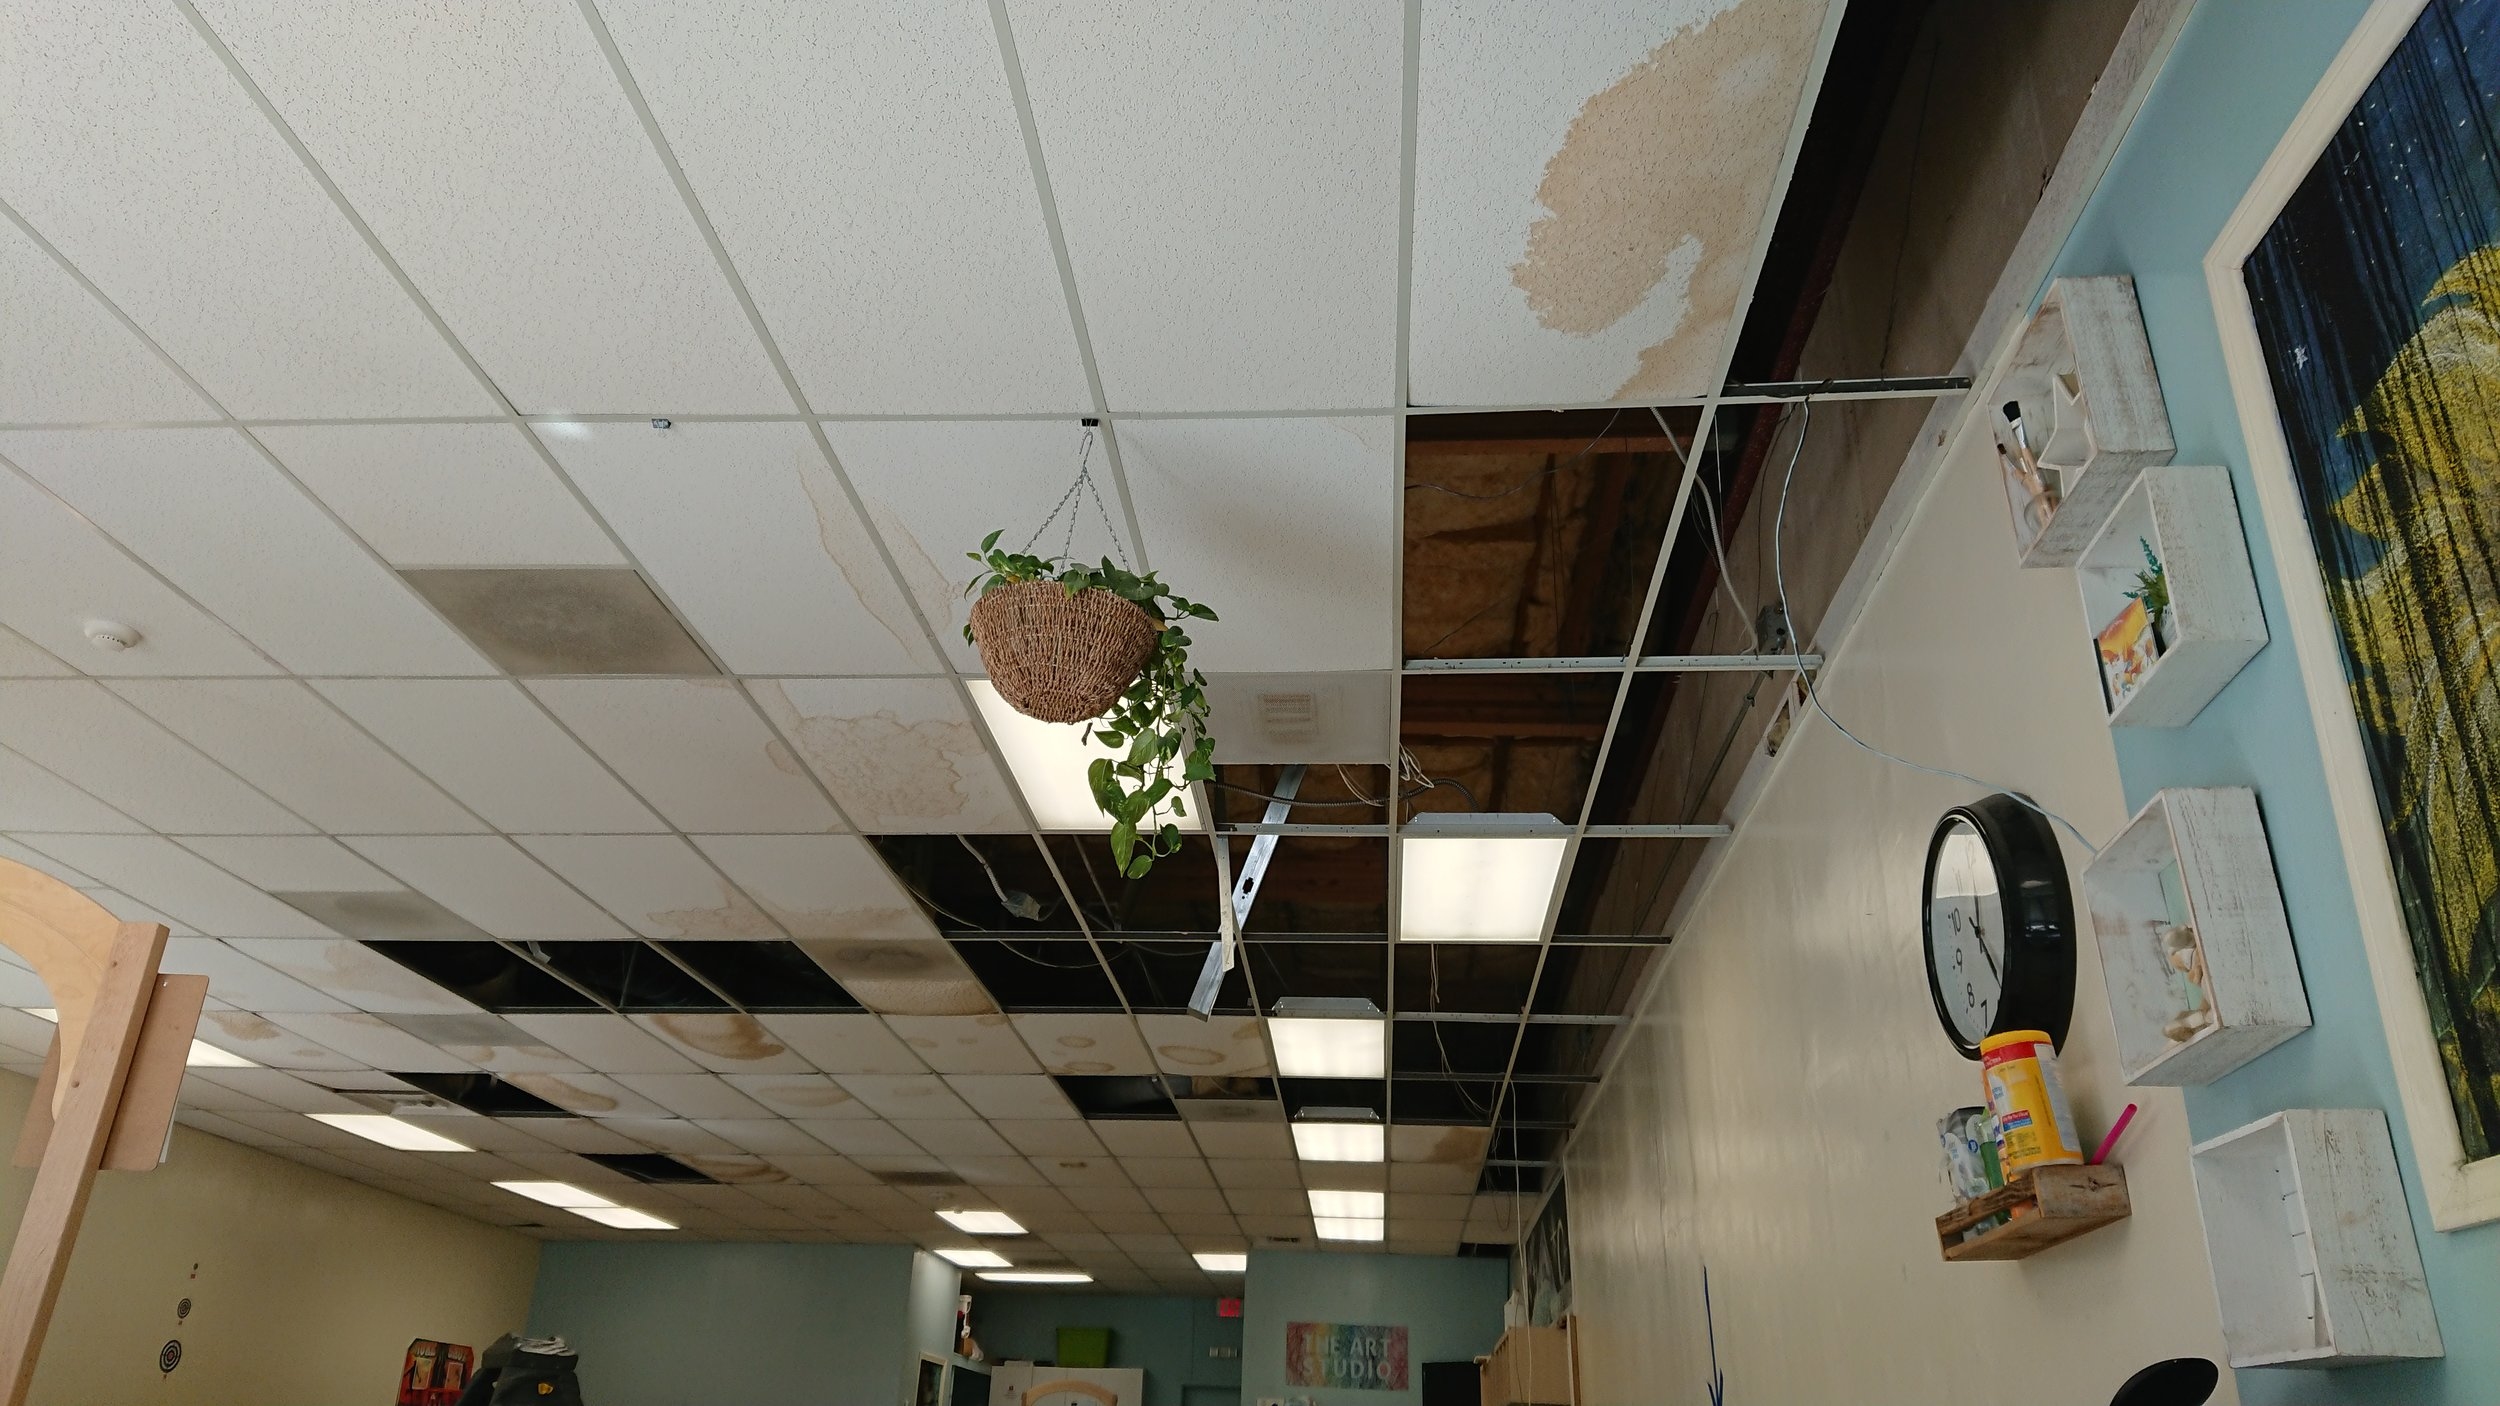 December 13th, this was what was left of the ceiling tiles that didn't crash down